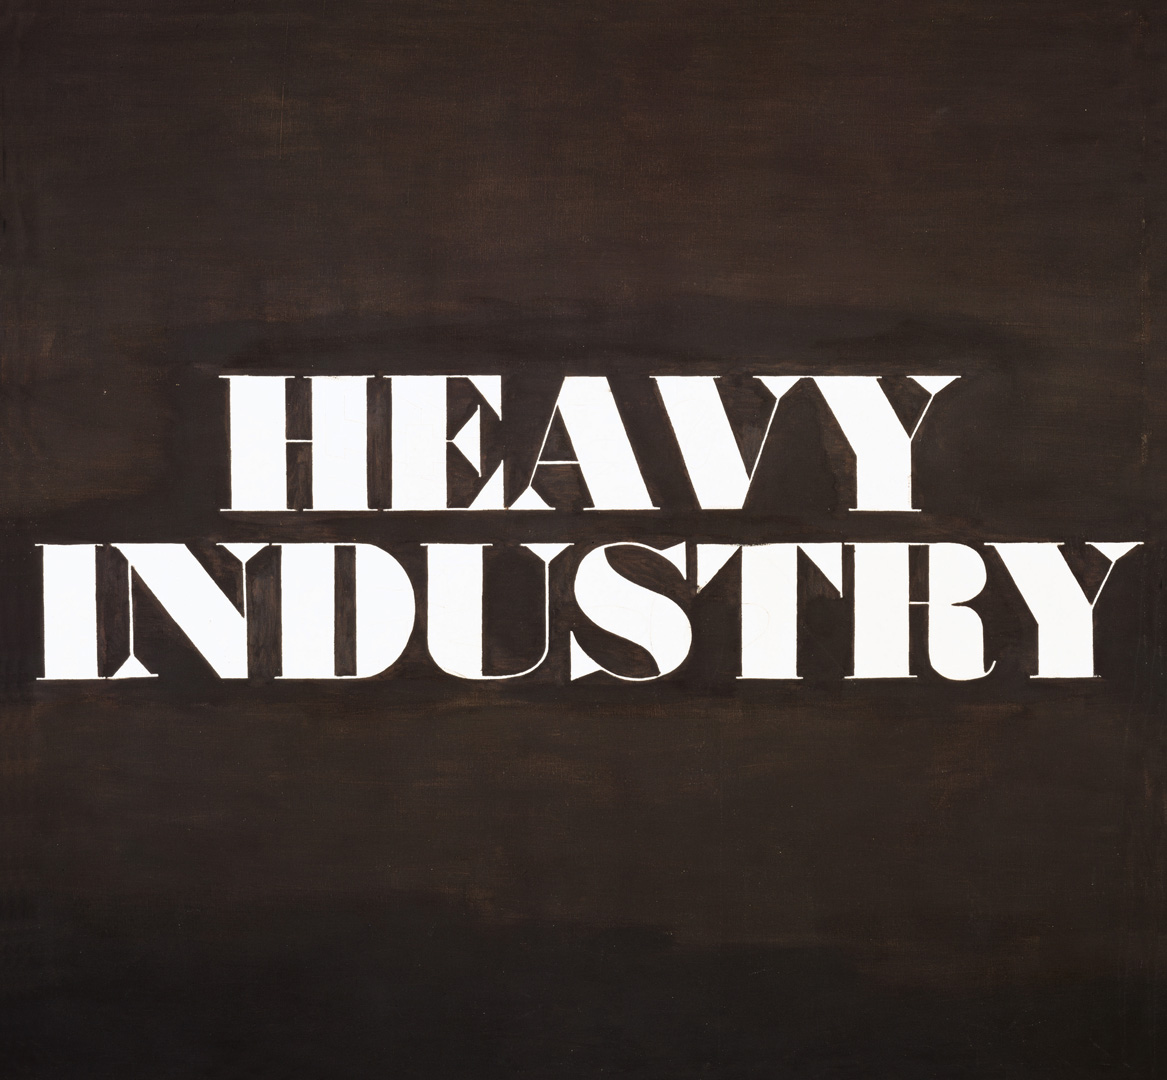 Ed Ruscha - Heavy Industry, 1962, oil and pencil on canvas